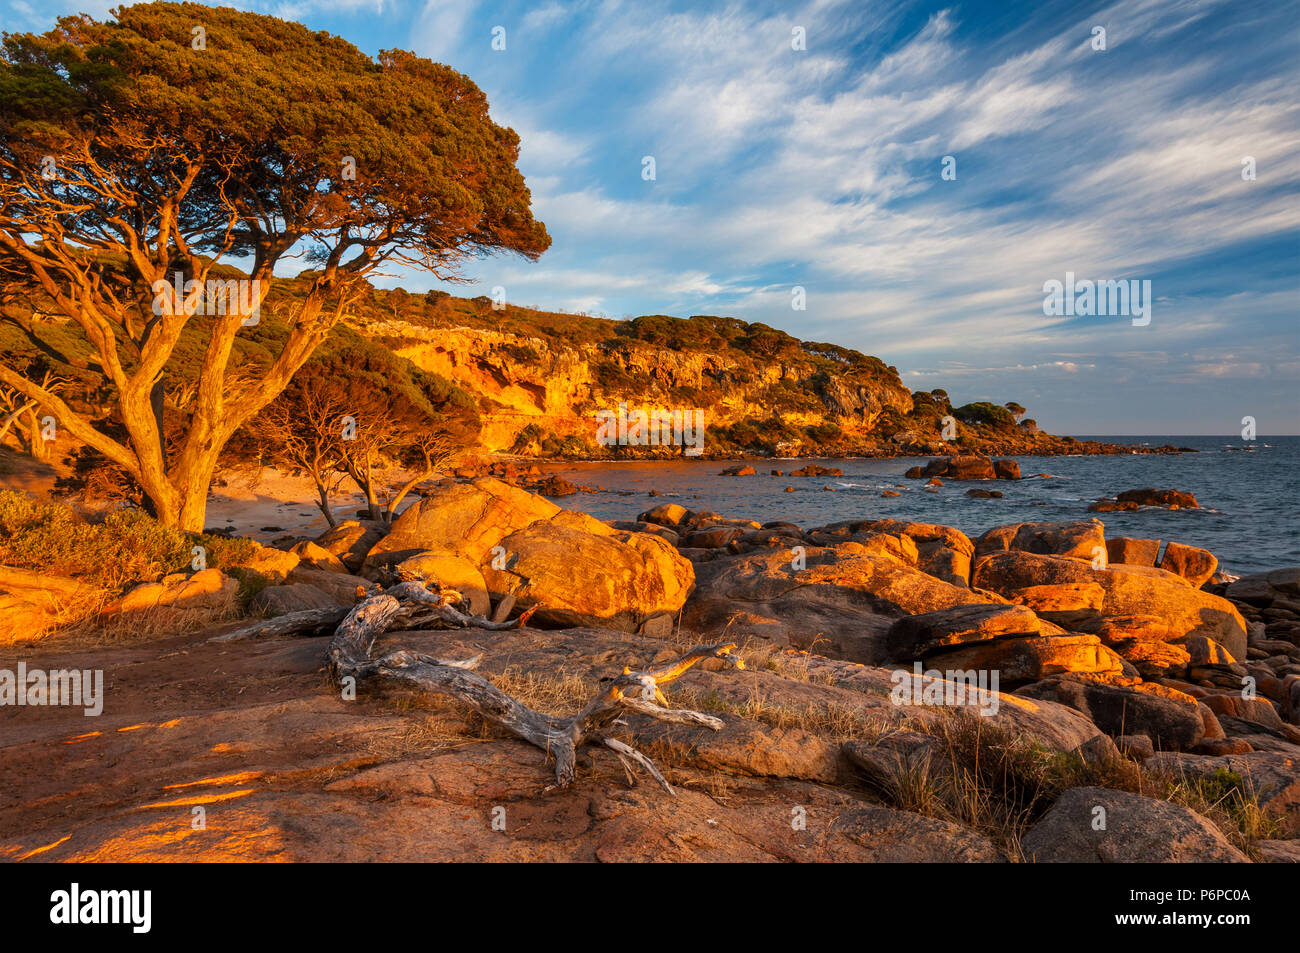 Sunrise at Bunker Bay in Leeuwin-Naturaliste National Park. - Stock Image